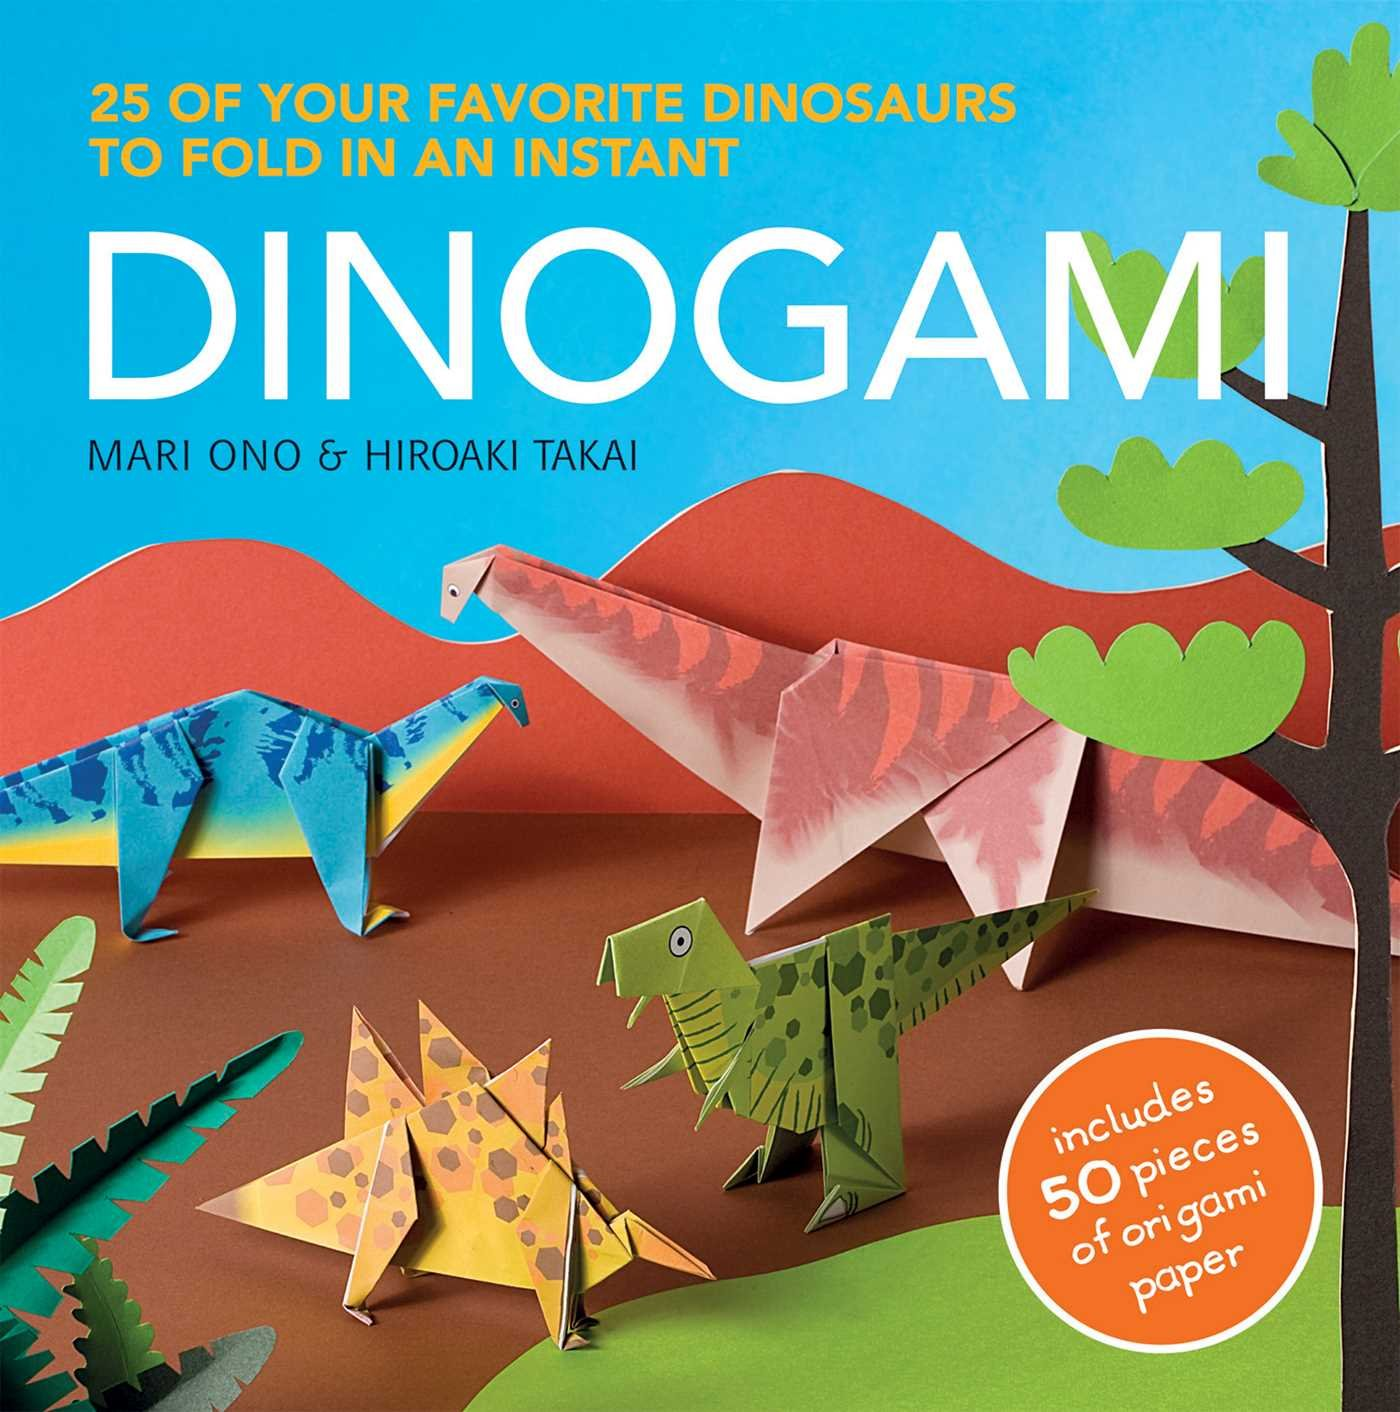 Dinogami 25 Of Your Favourite Dinosaurs To Fold In An Instant Mari Diagram Dinosaur Origami Create Stunning Models On Ono Hiroaki Takai 9781908170958 Books